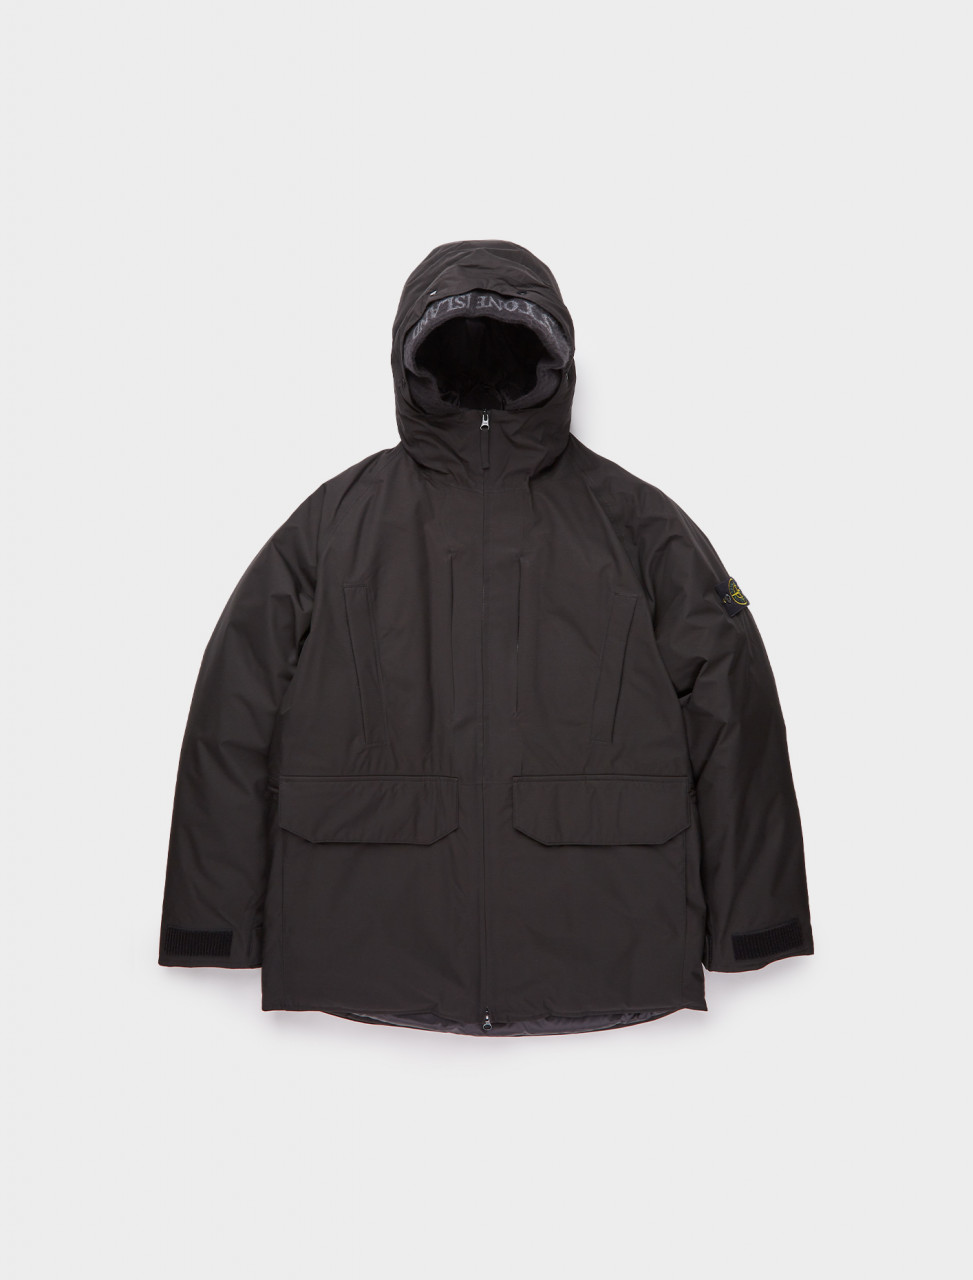 241-MO731540230-V0029 STONE ISLAND DOWN FILLED ANORAK BLACK